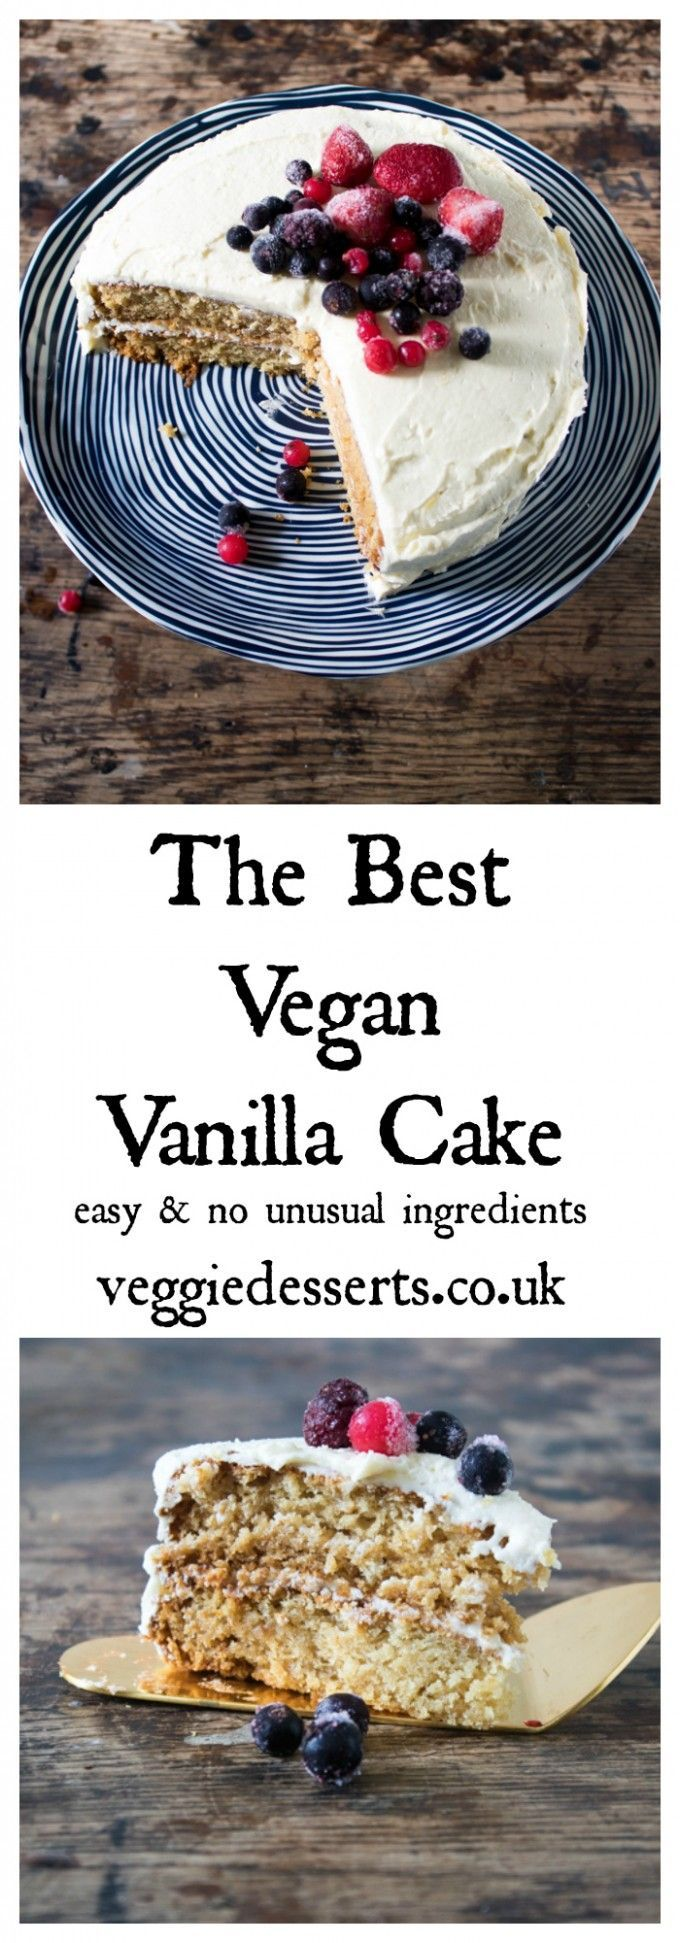 4338 best top uk food blog recipes images on pinterest easy the best vegan vanilla cake with berries forumfinder Choice Image